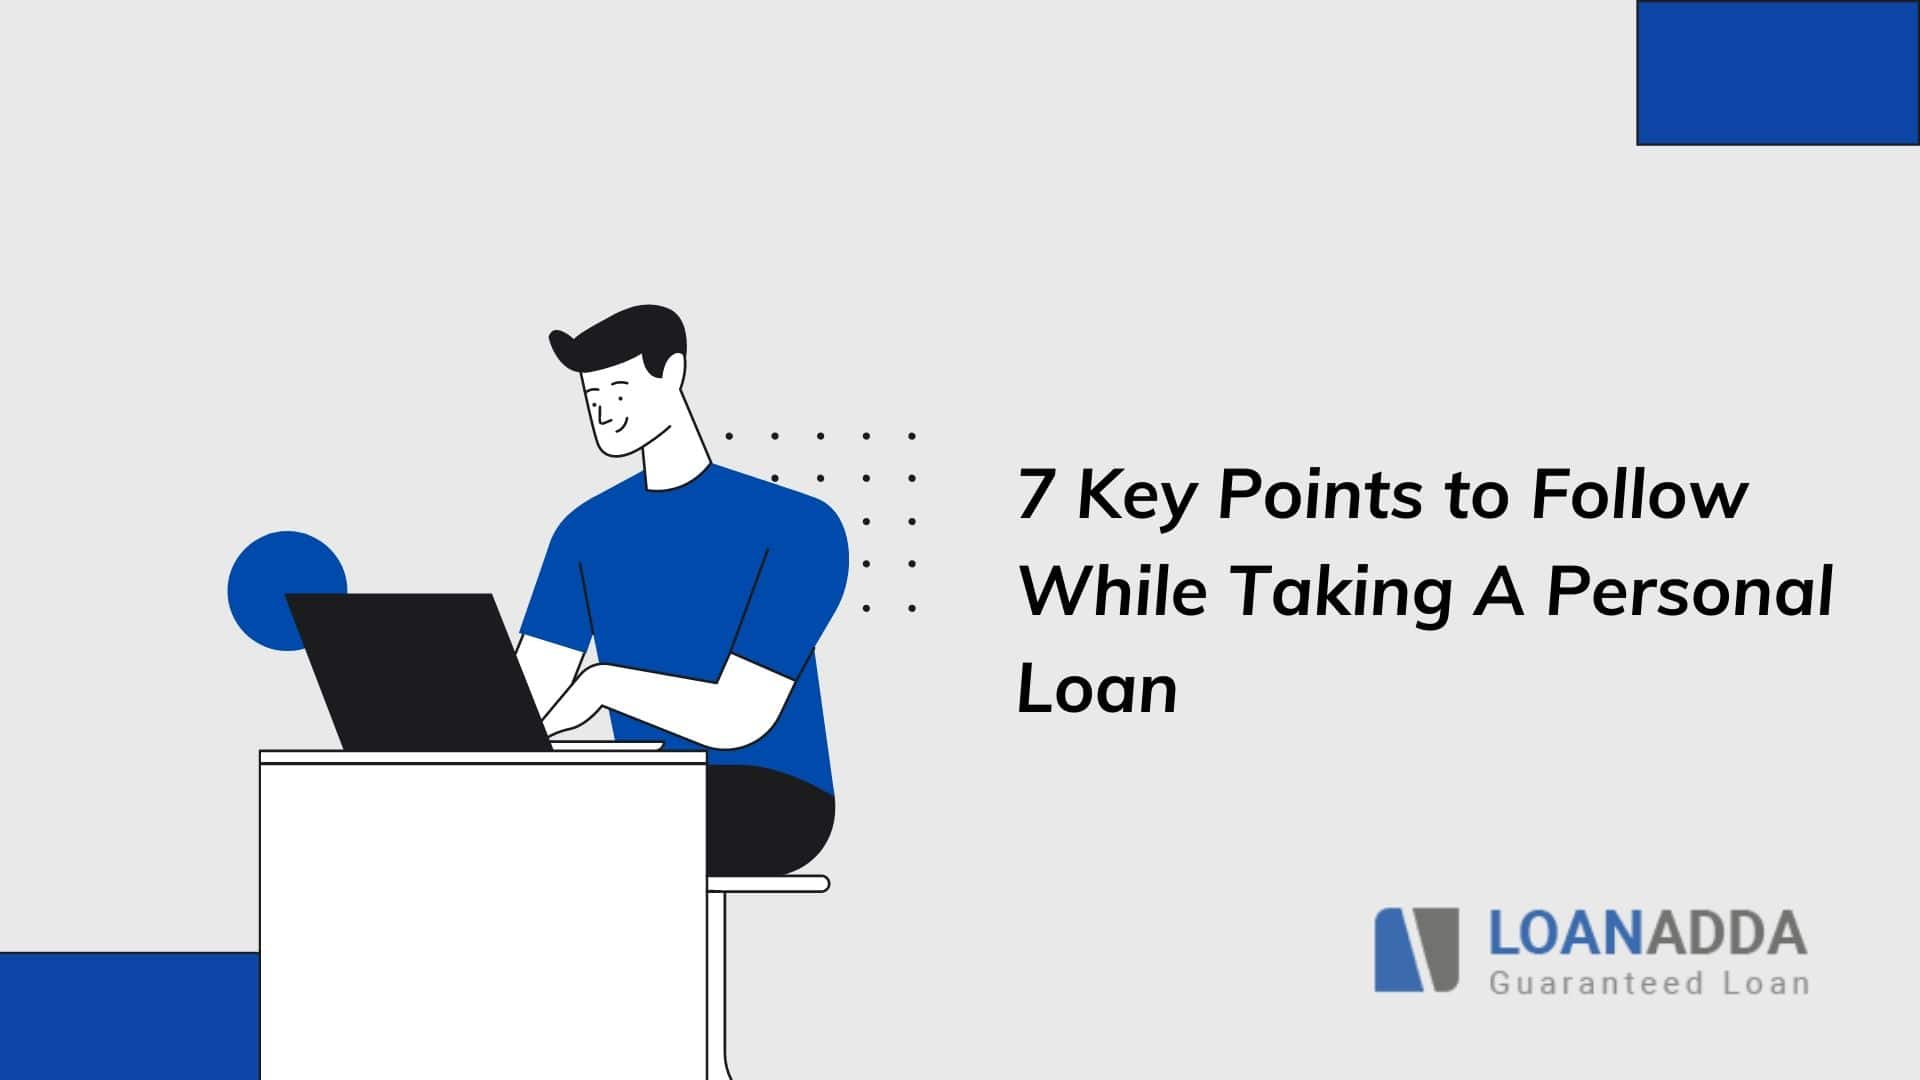 7 Key Points to Follow While Taking A Personal Loan